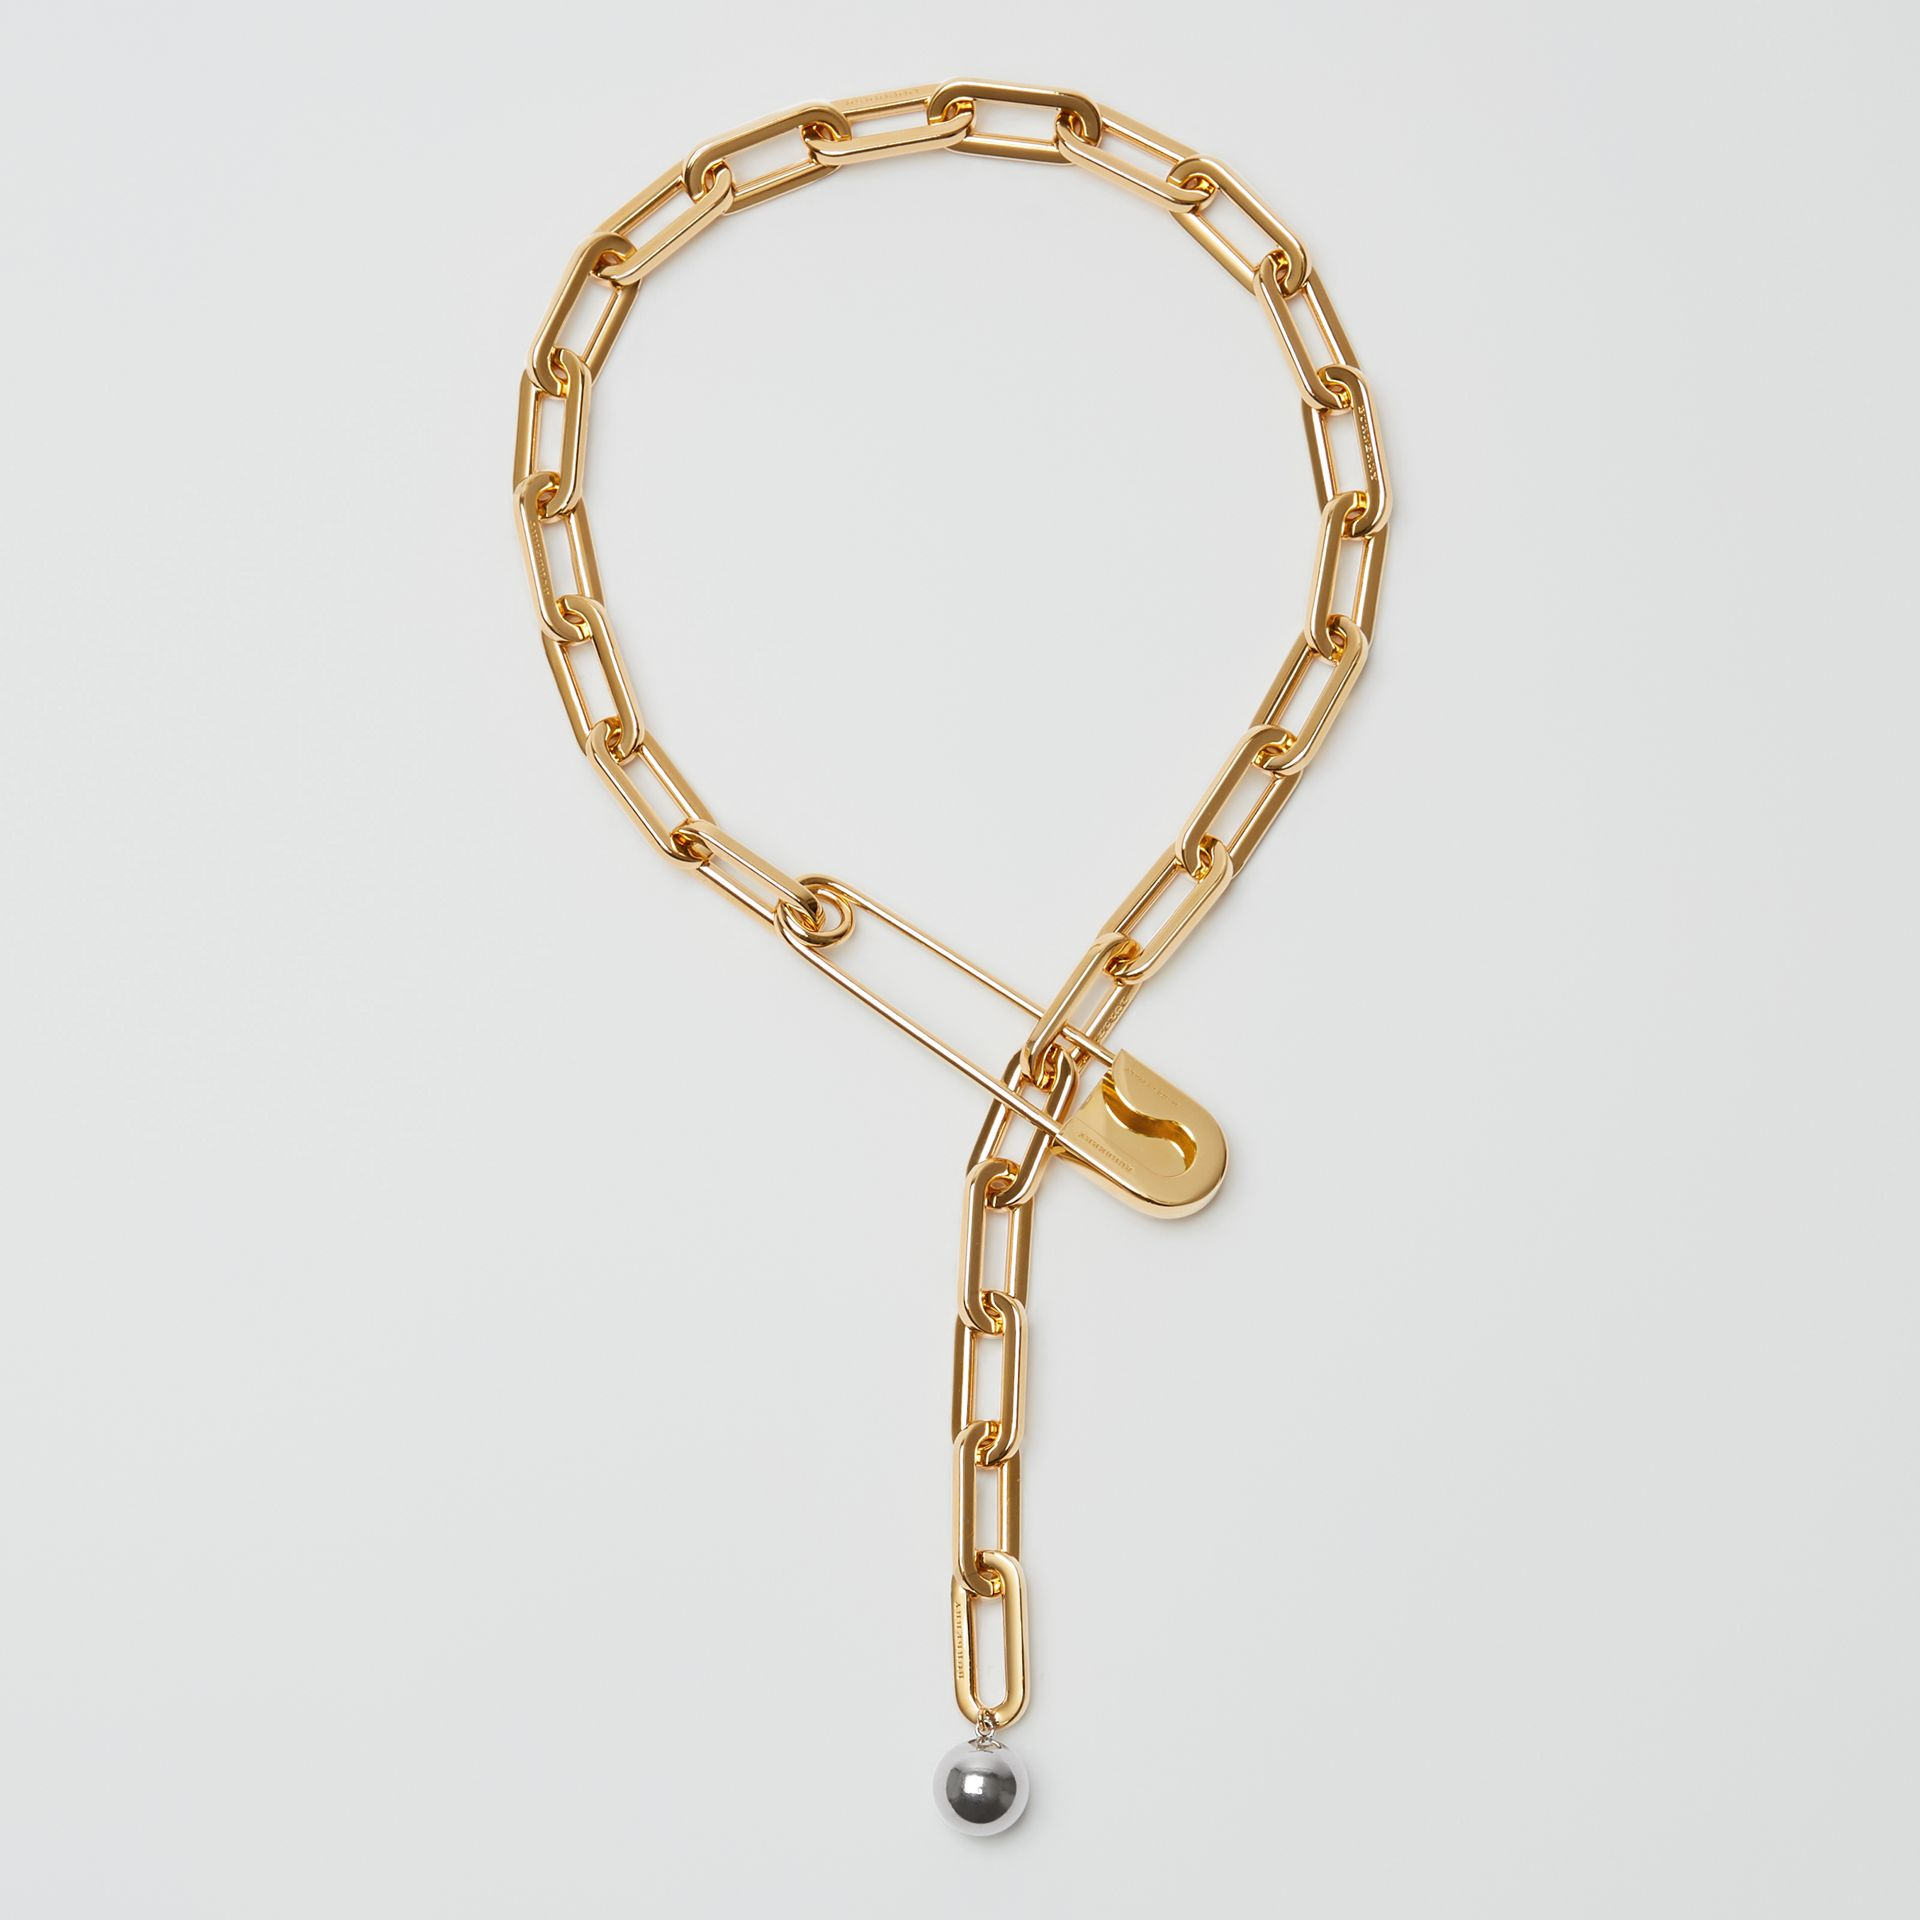 Crystal Daisy Kilt Pin Gold-plated Link Drop Necklace in Light - Women | Burberry United Kingdom - gallery image 0